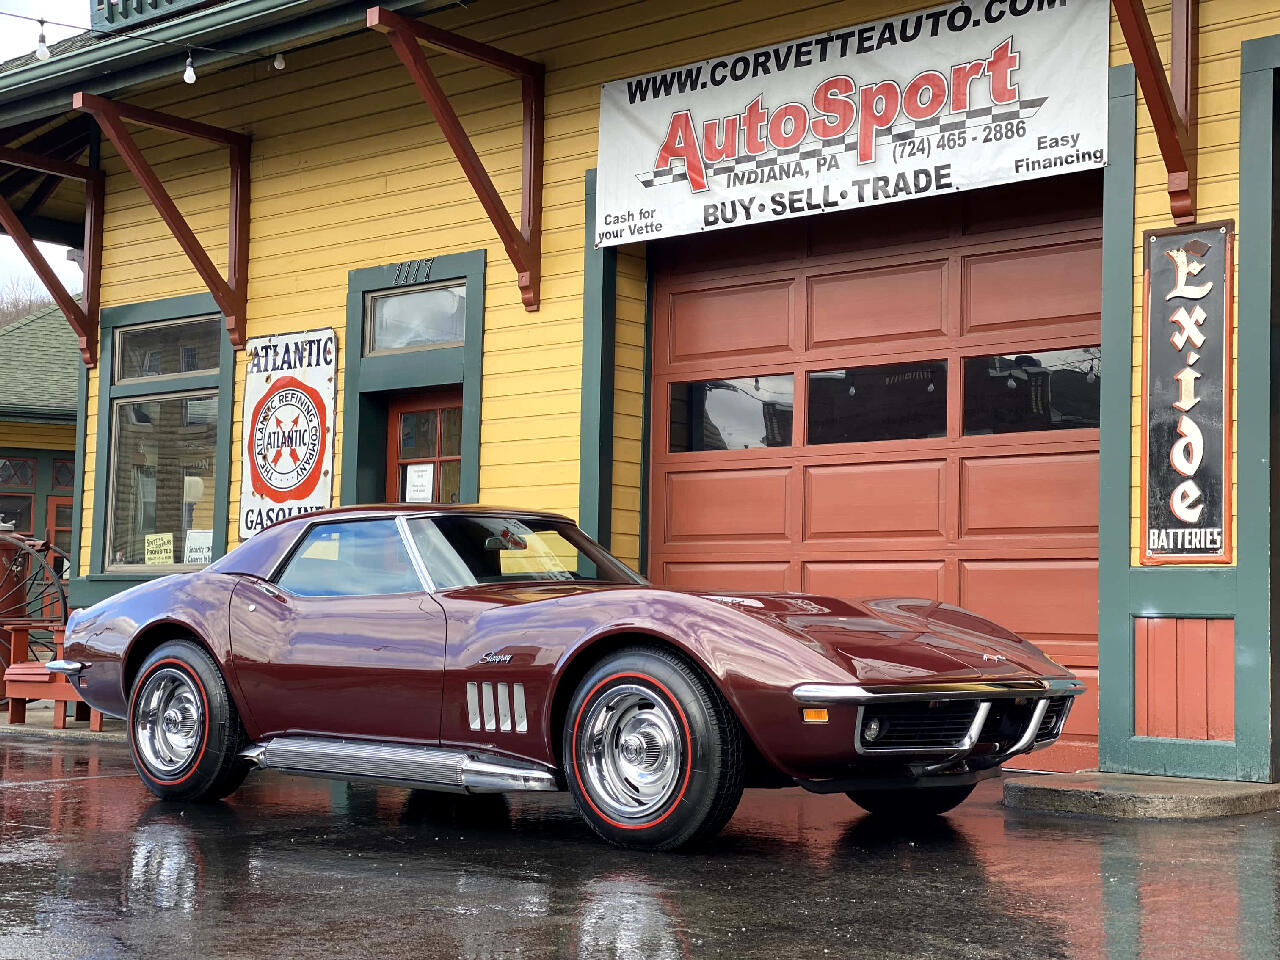 1969 Chevrolet Corvette 1969 Frame Off Restored 427ci Corvette Convertible